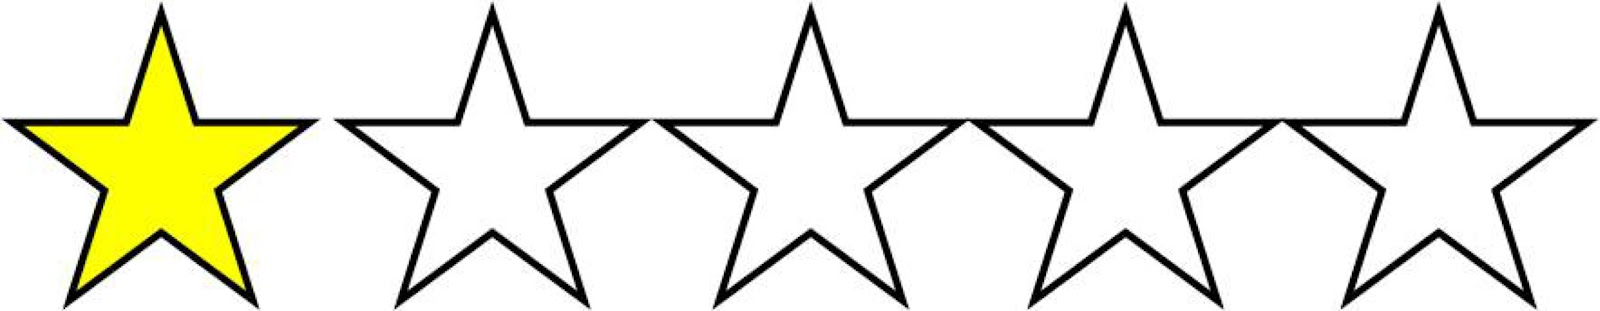 Image result for 1 out of 5 stars clipart